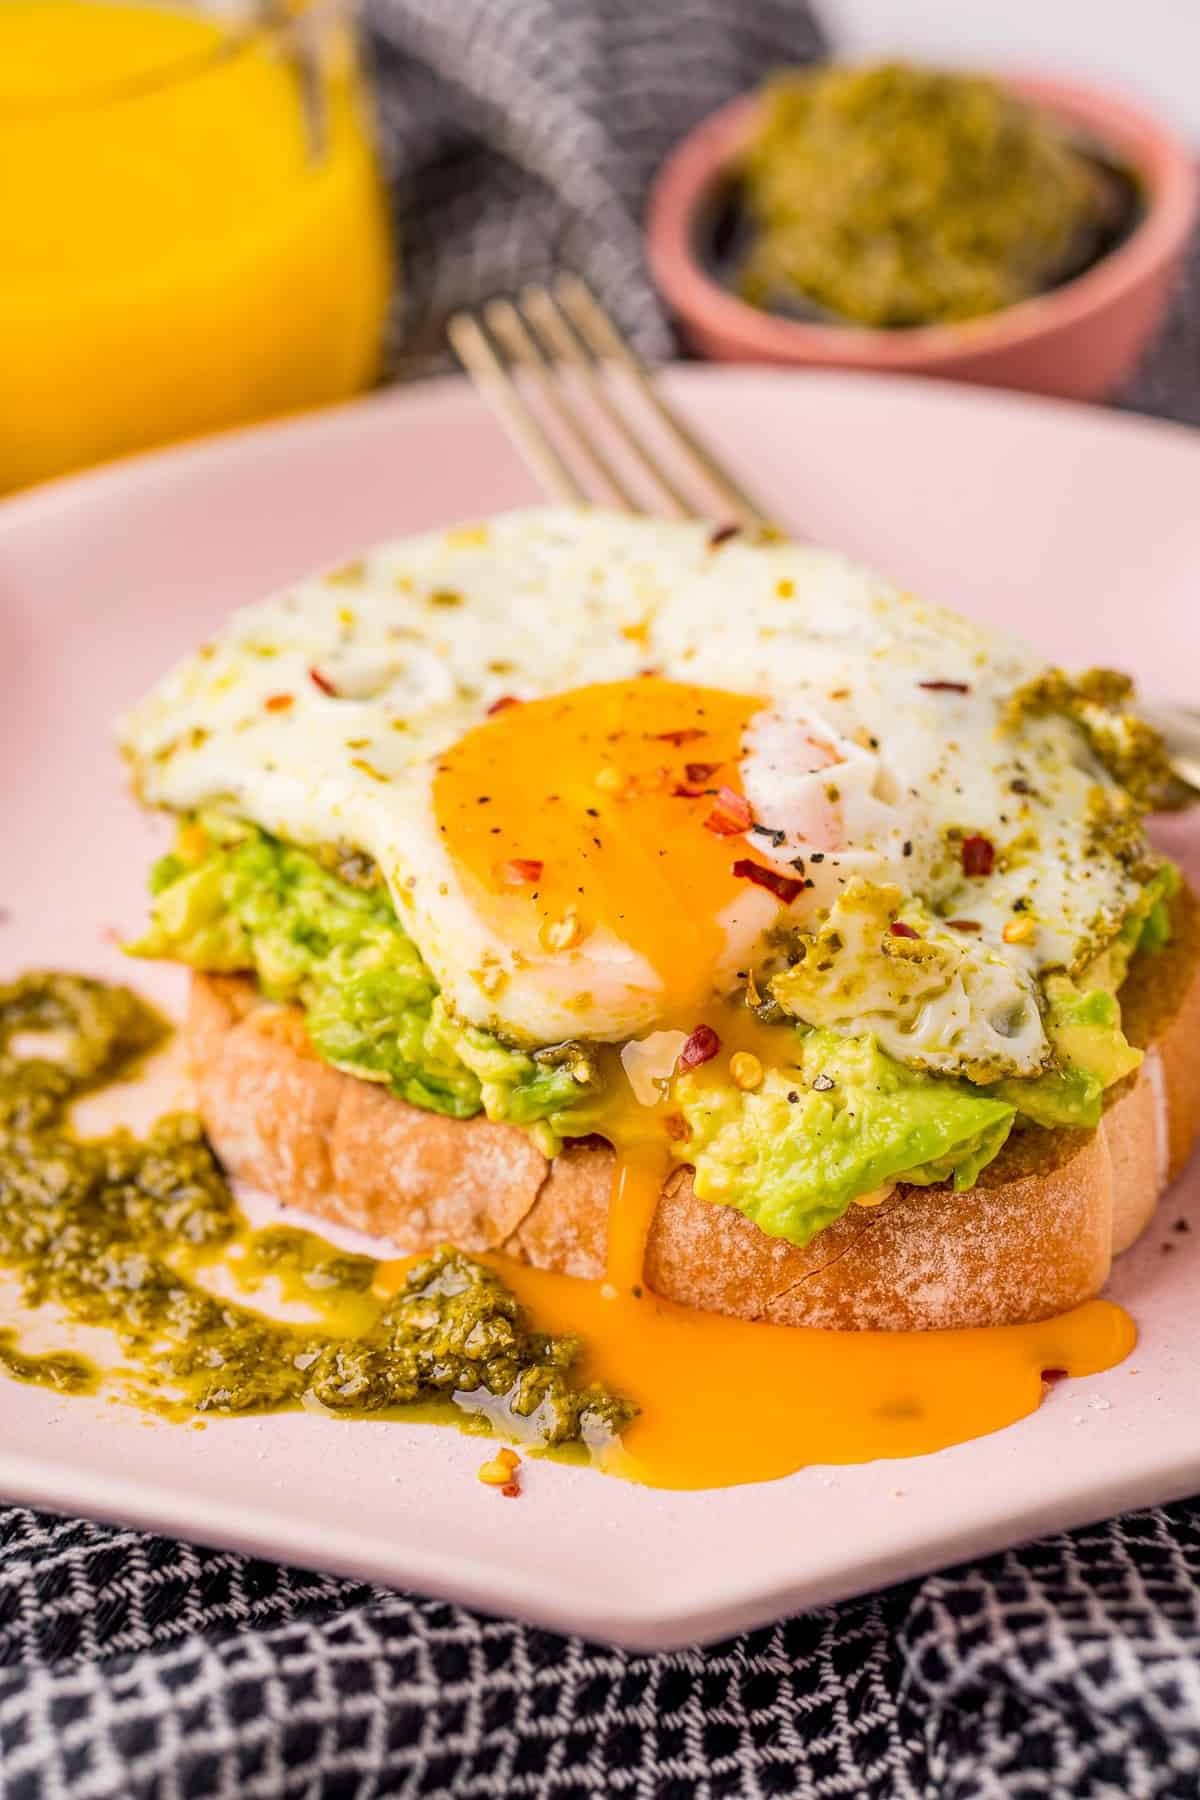 Avocado toast topped with a runny egg.